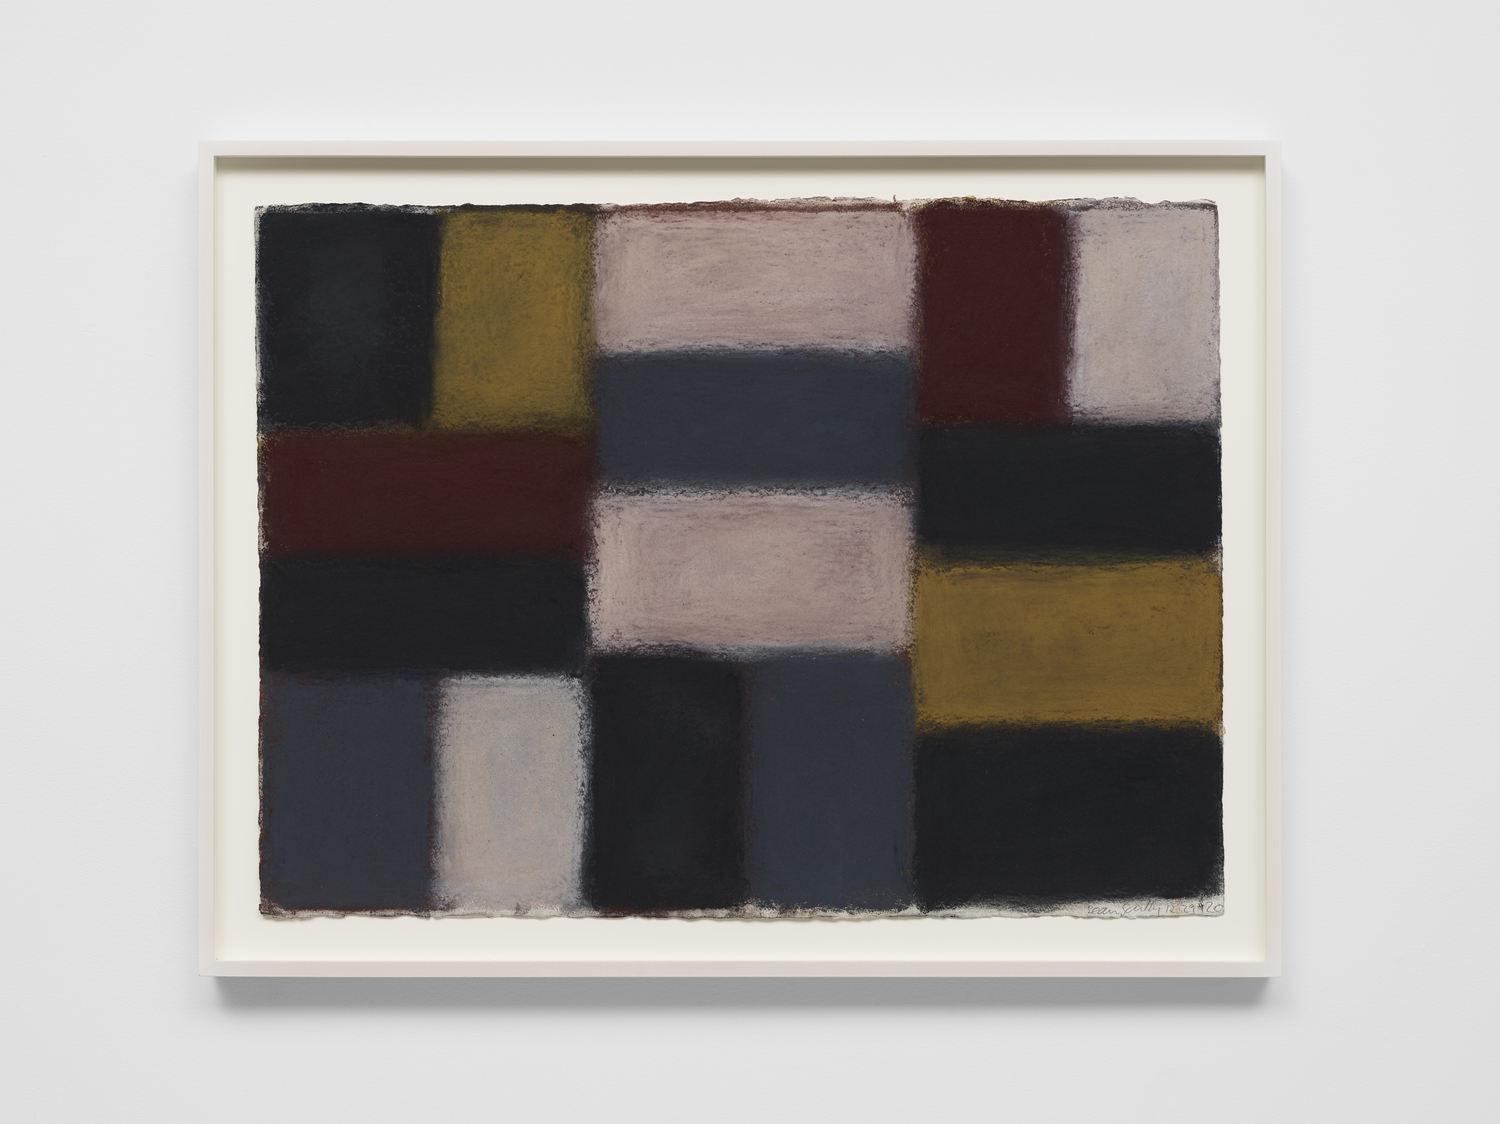 Sean Scully 12.29.20, 2020 Pastel on paper 57.2 x 77.5 cm 22 1/2 x 30 1/2 in © Sean Scully. Courtesy Lisson Gallery